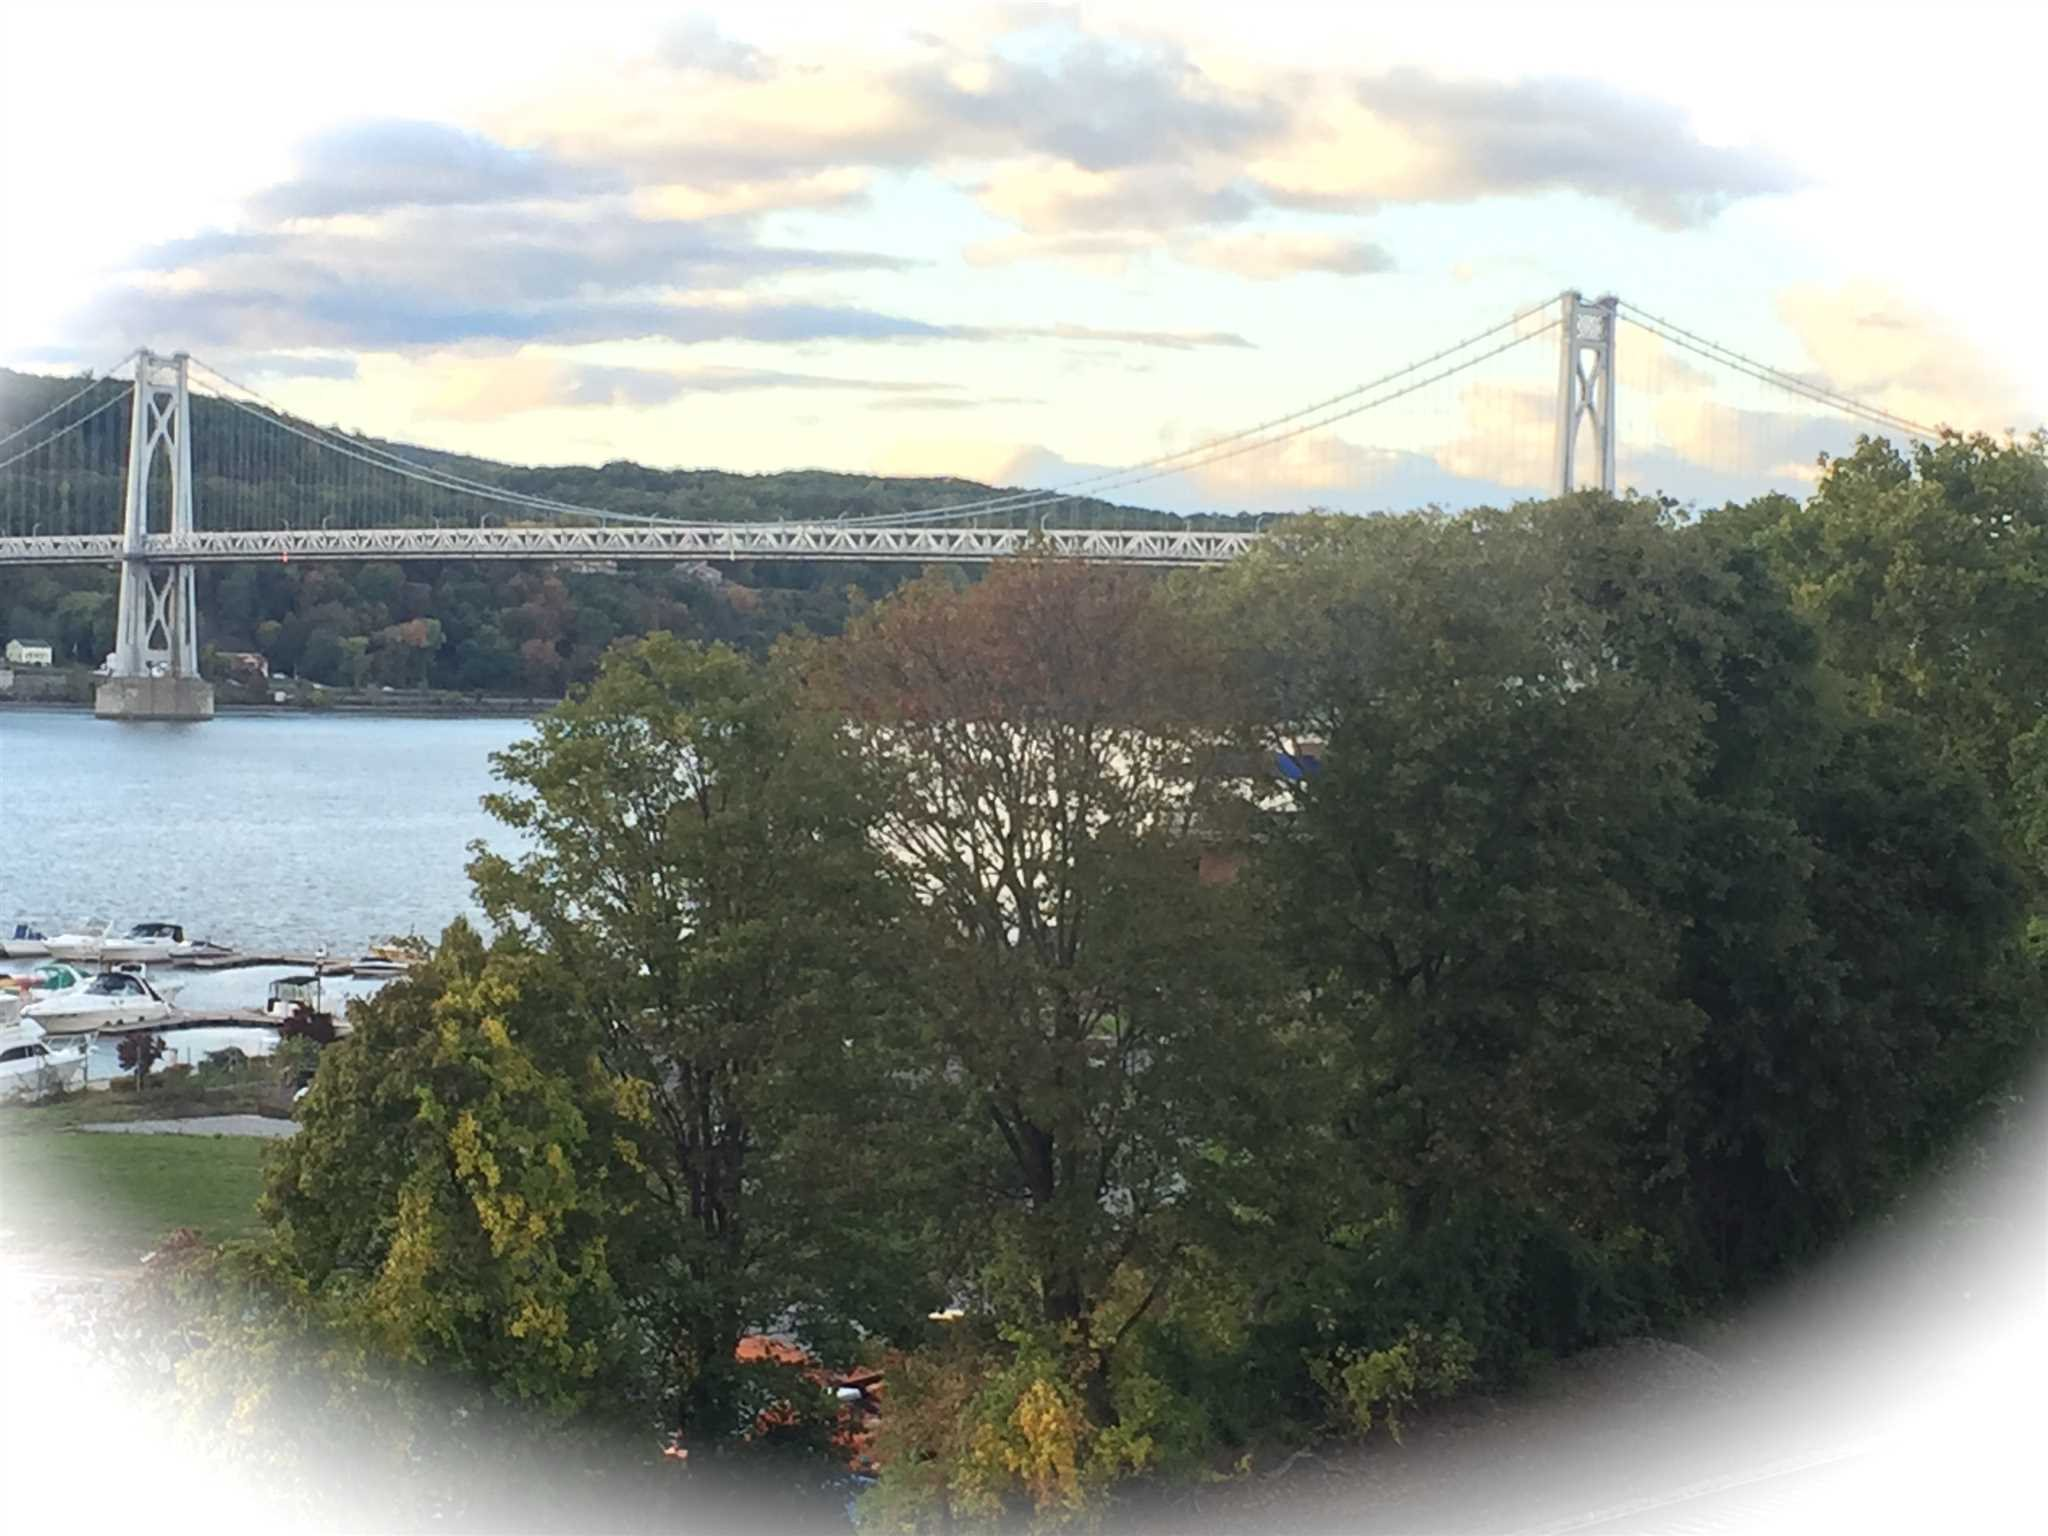 Single Family Home for Sale at 108 HUDSON POINTE DRIVE 108 HUDSON POINTE DRIVE Poughkeepsie, New York 12601 United States